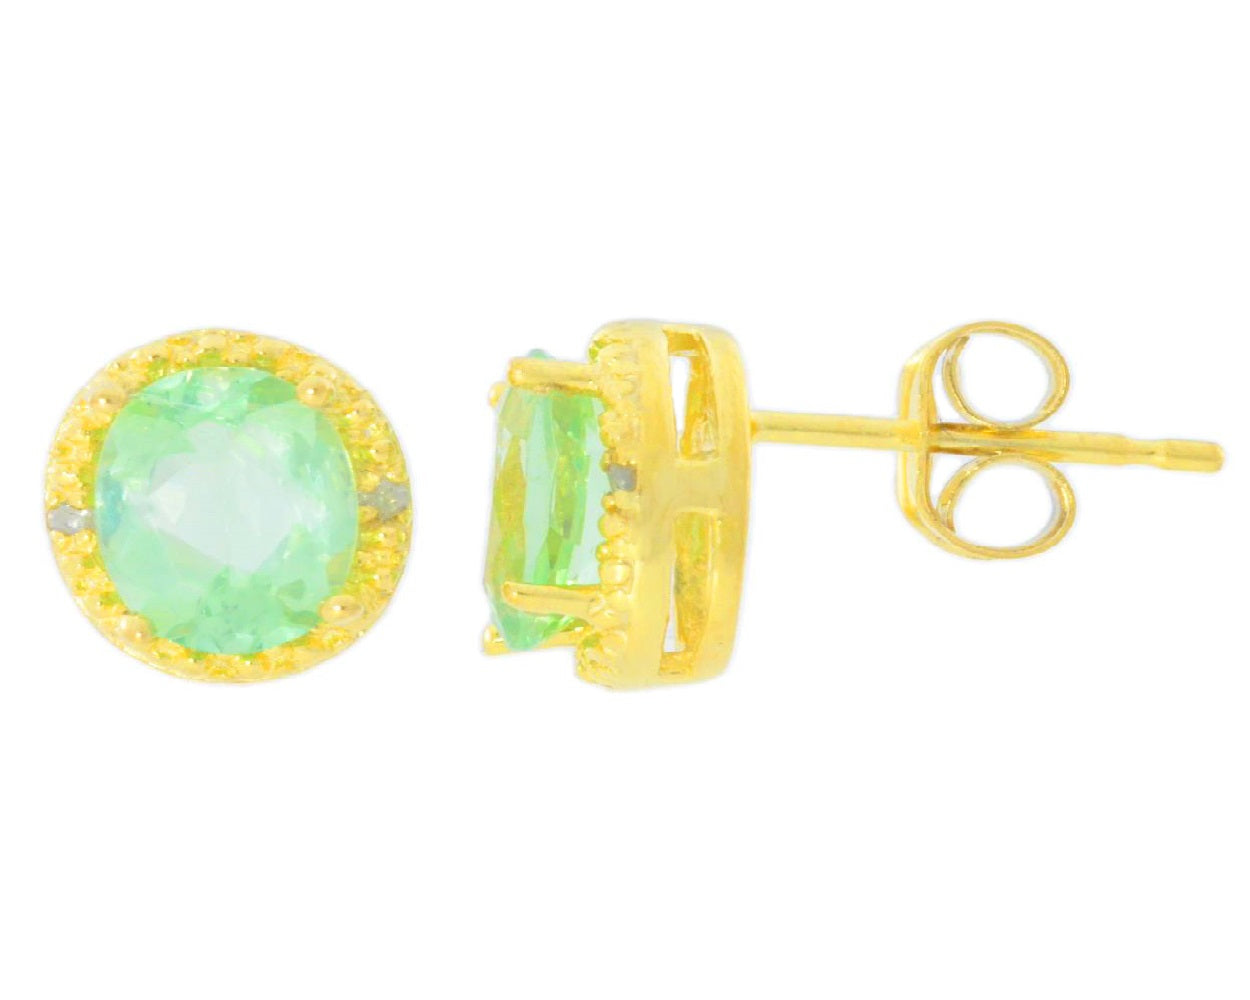 2 Ct Green Sapphire & Diamond Round Stud Earrings 14Kt Yellow Gold